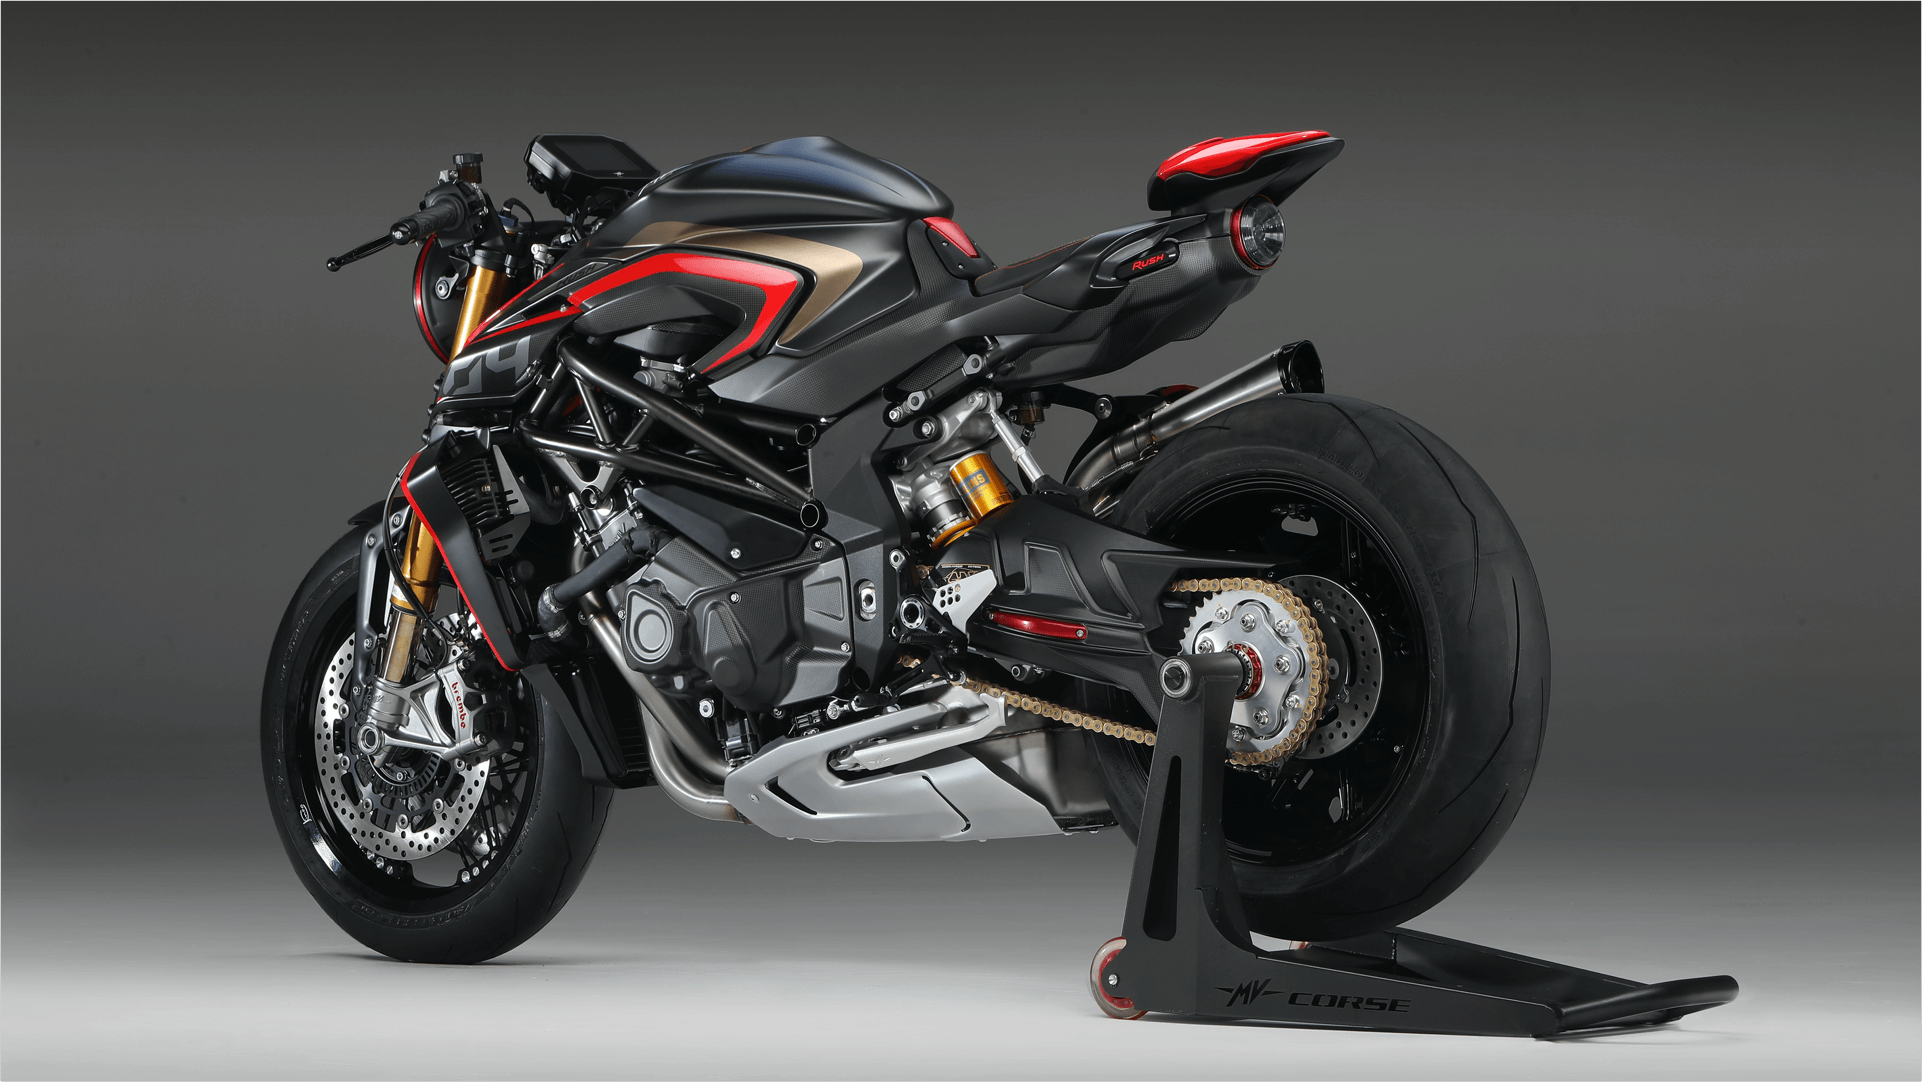 2020 MV Agusta Rush 1000 Rear View